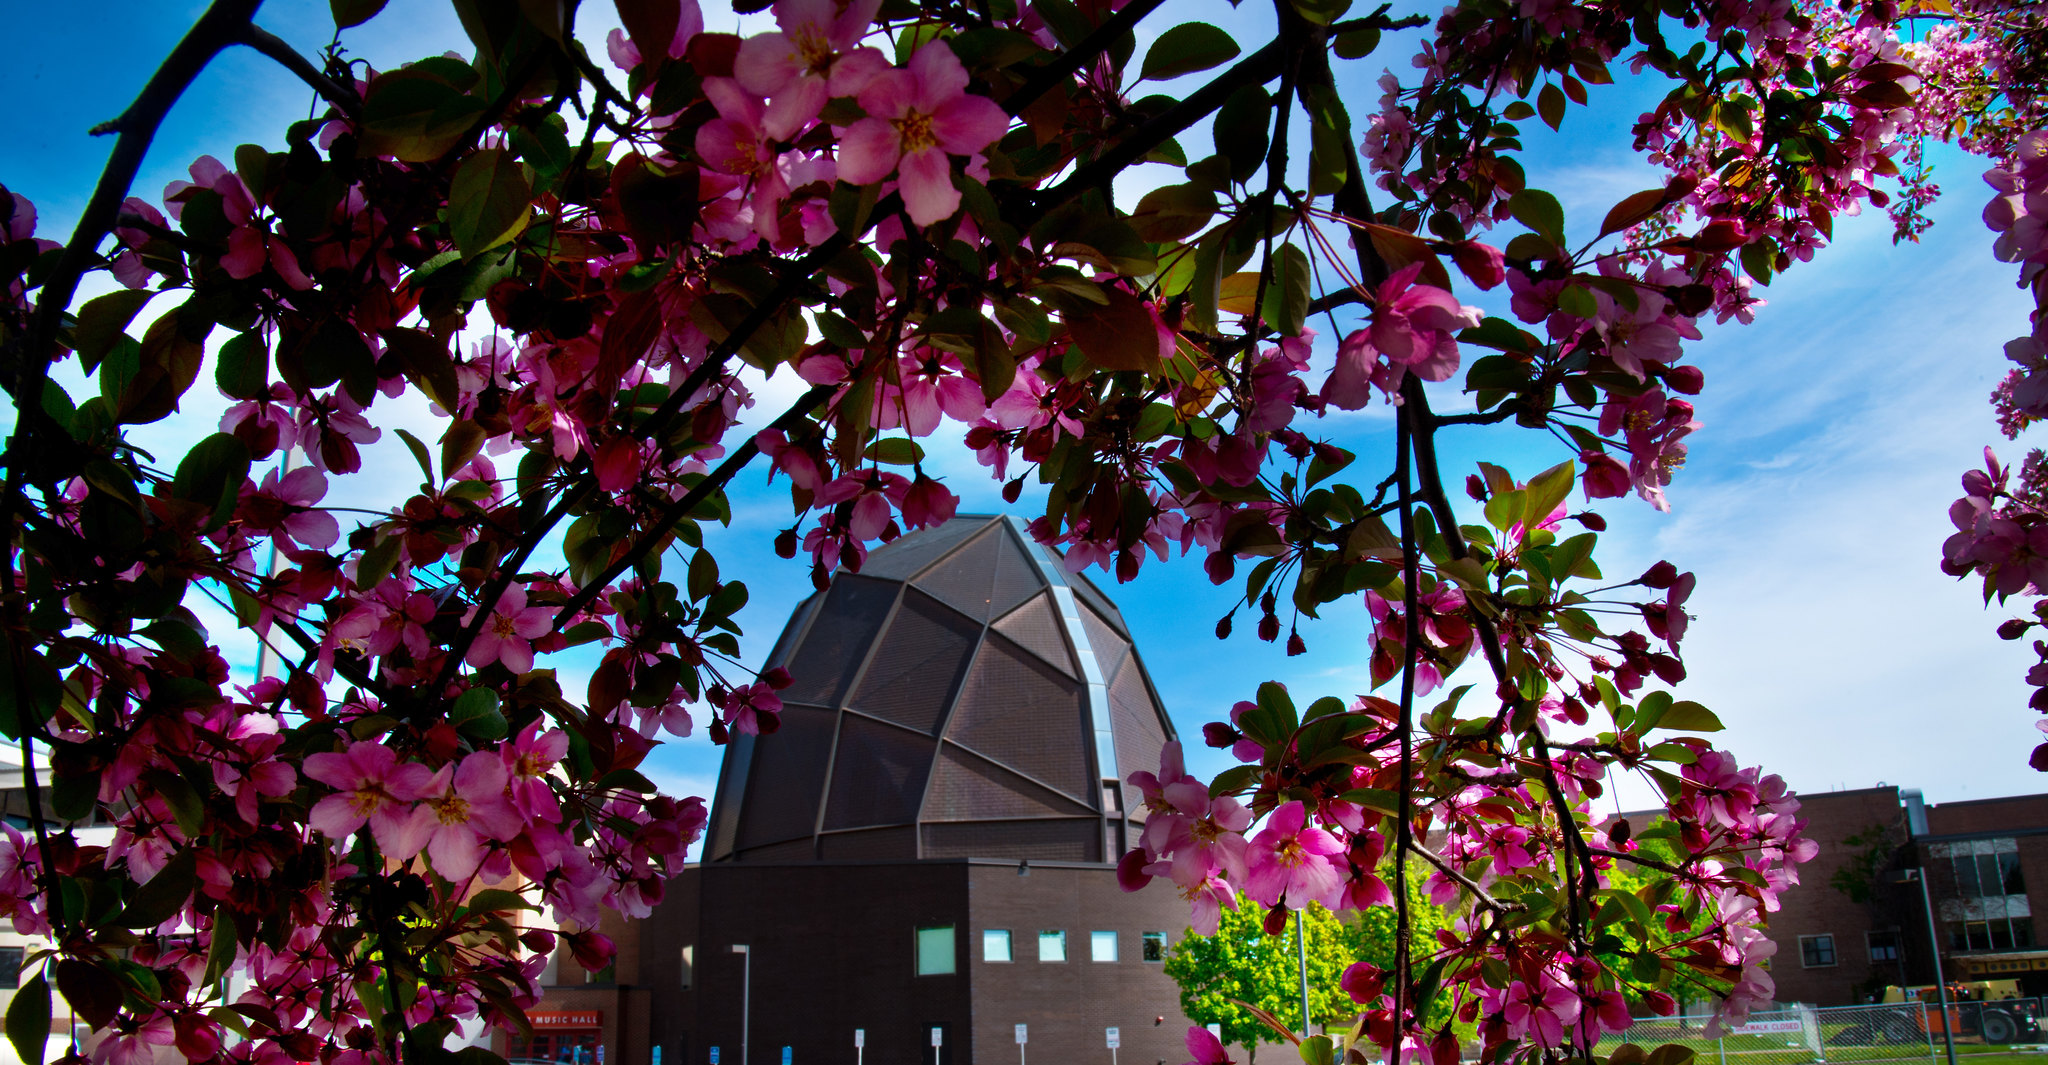 Pink flowers framing a dome-shaped building.